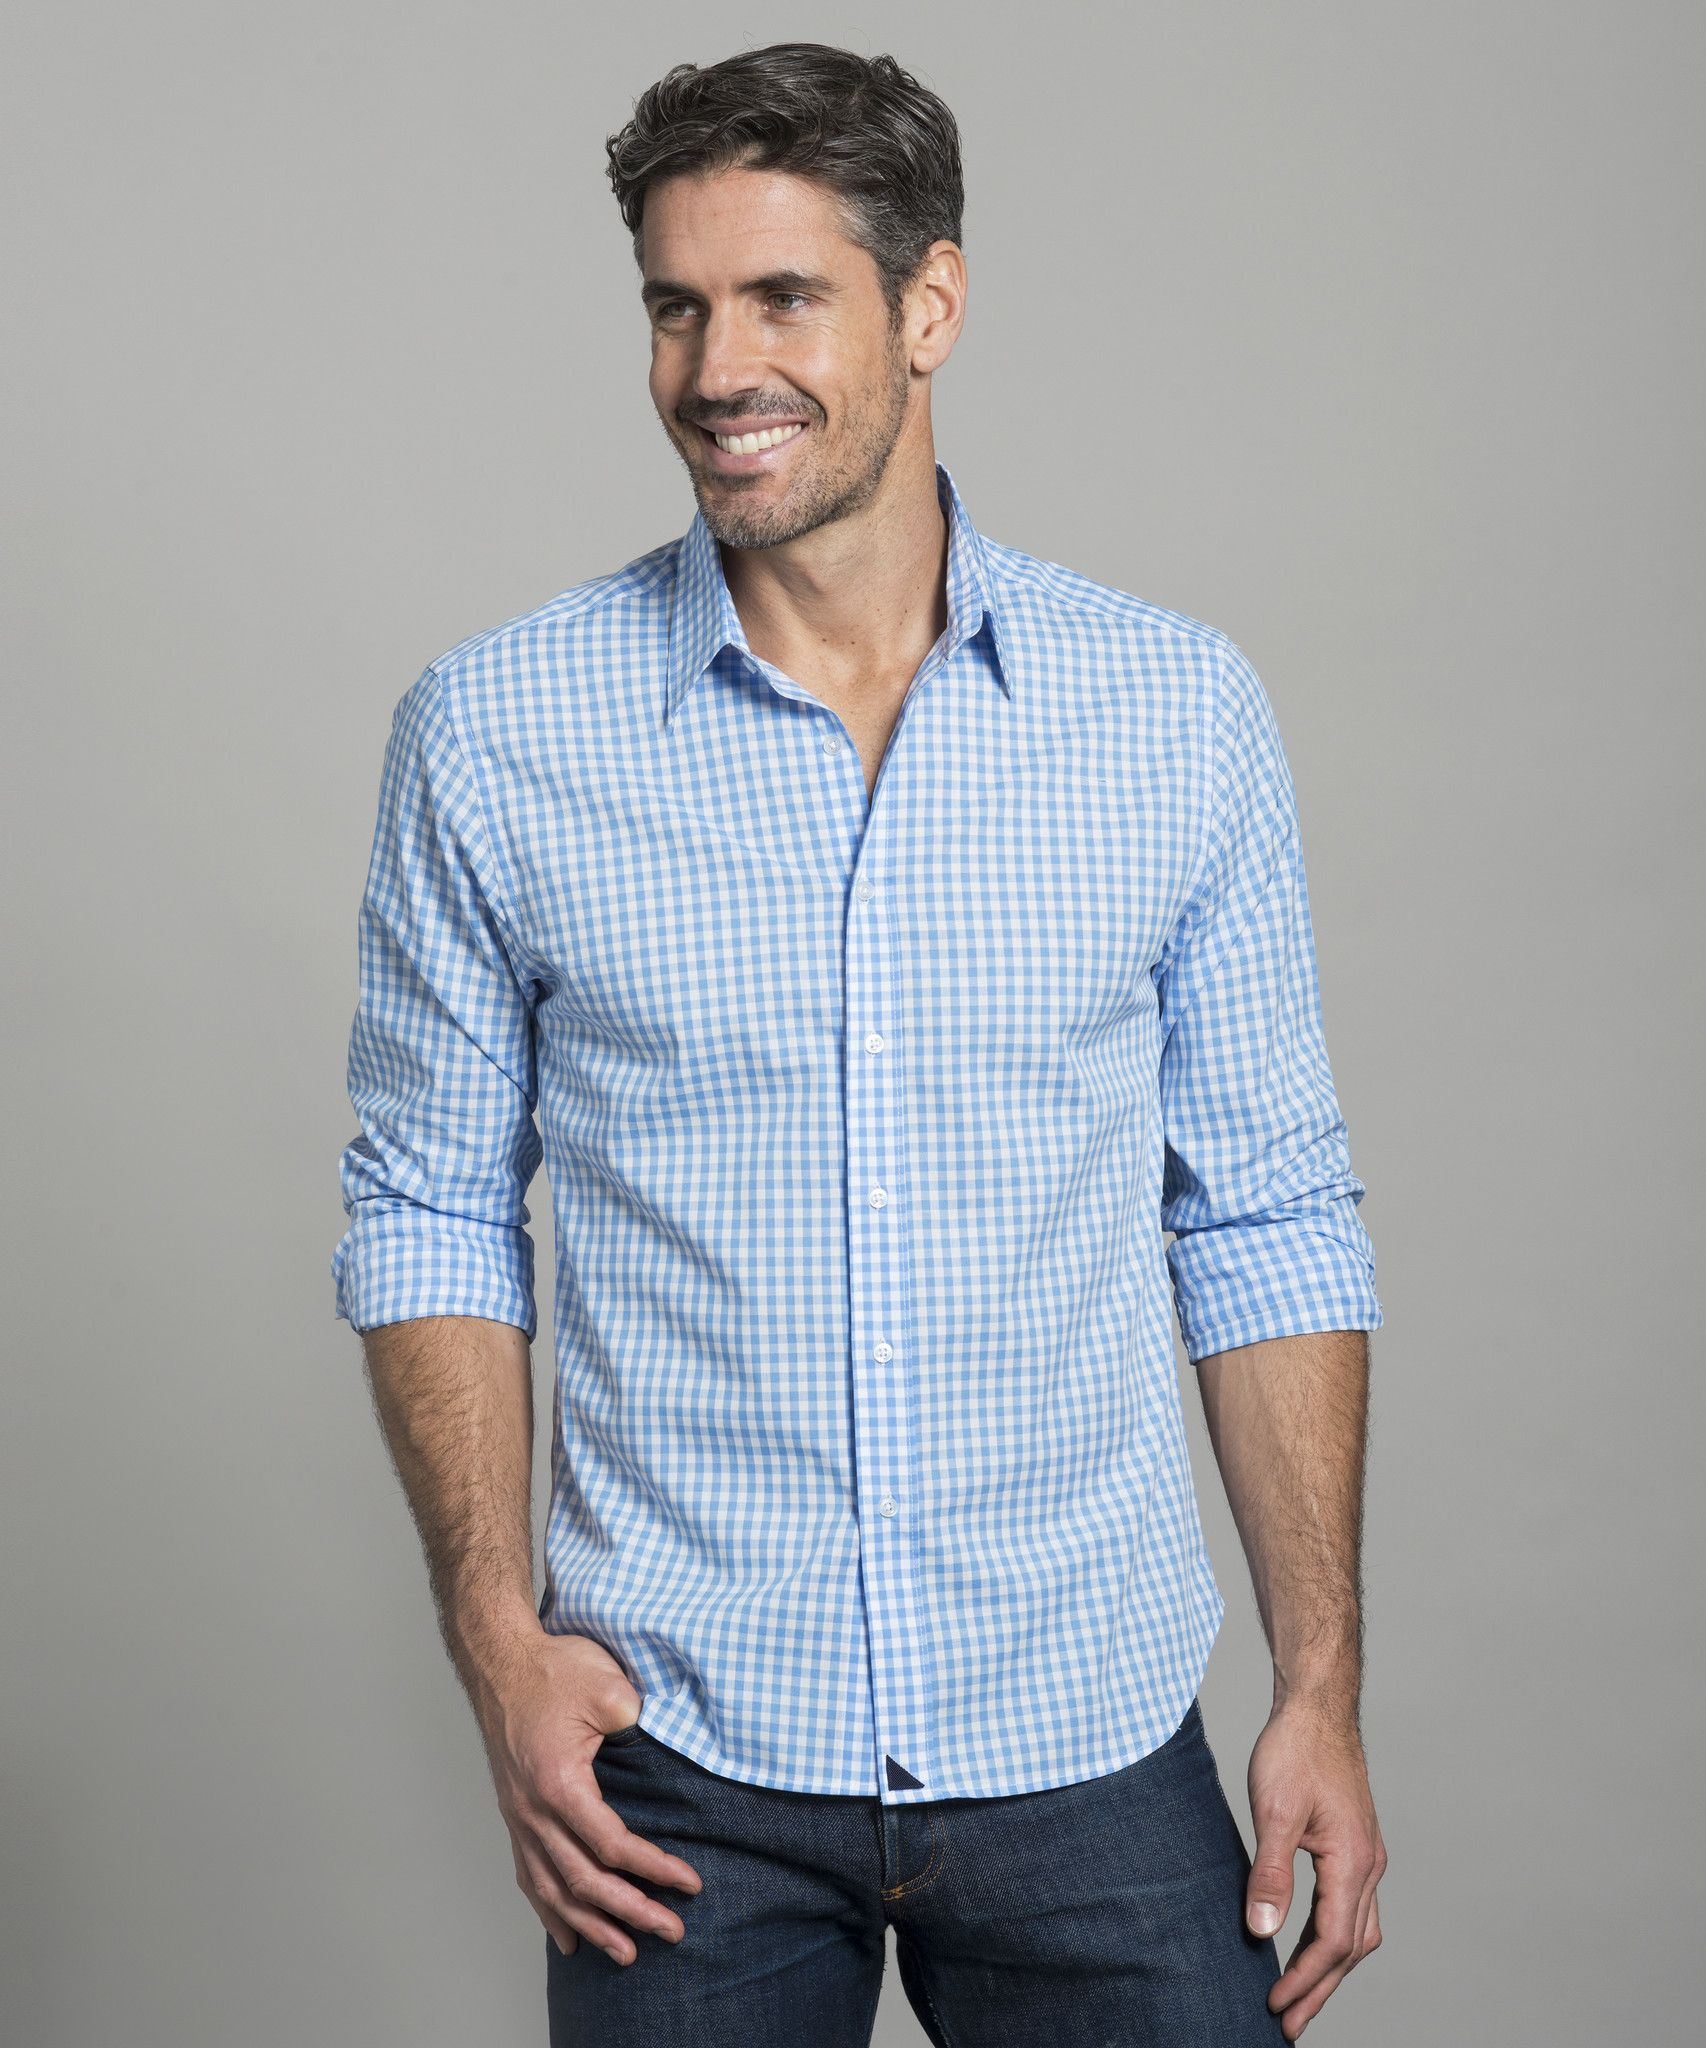 Untuckit men 39 s shirts guy smart casual and stylish men for Casual button down shirts untucked